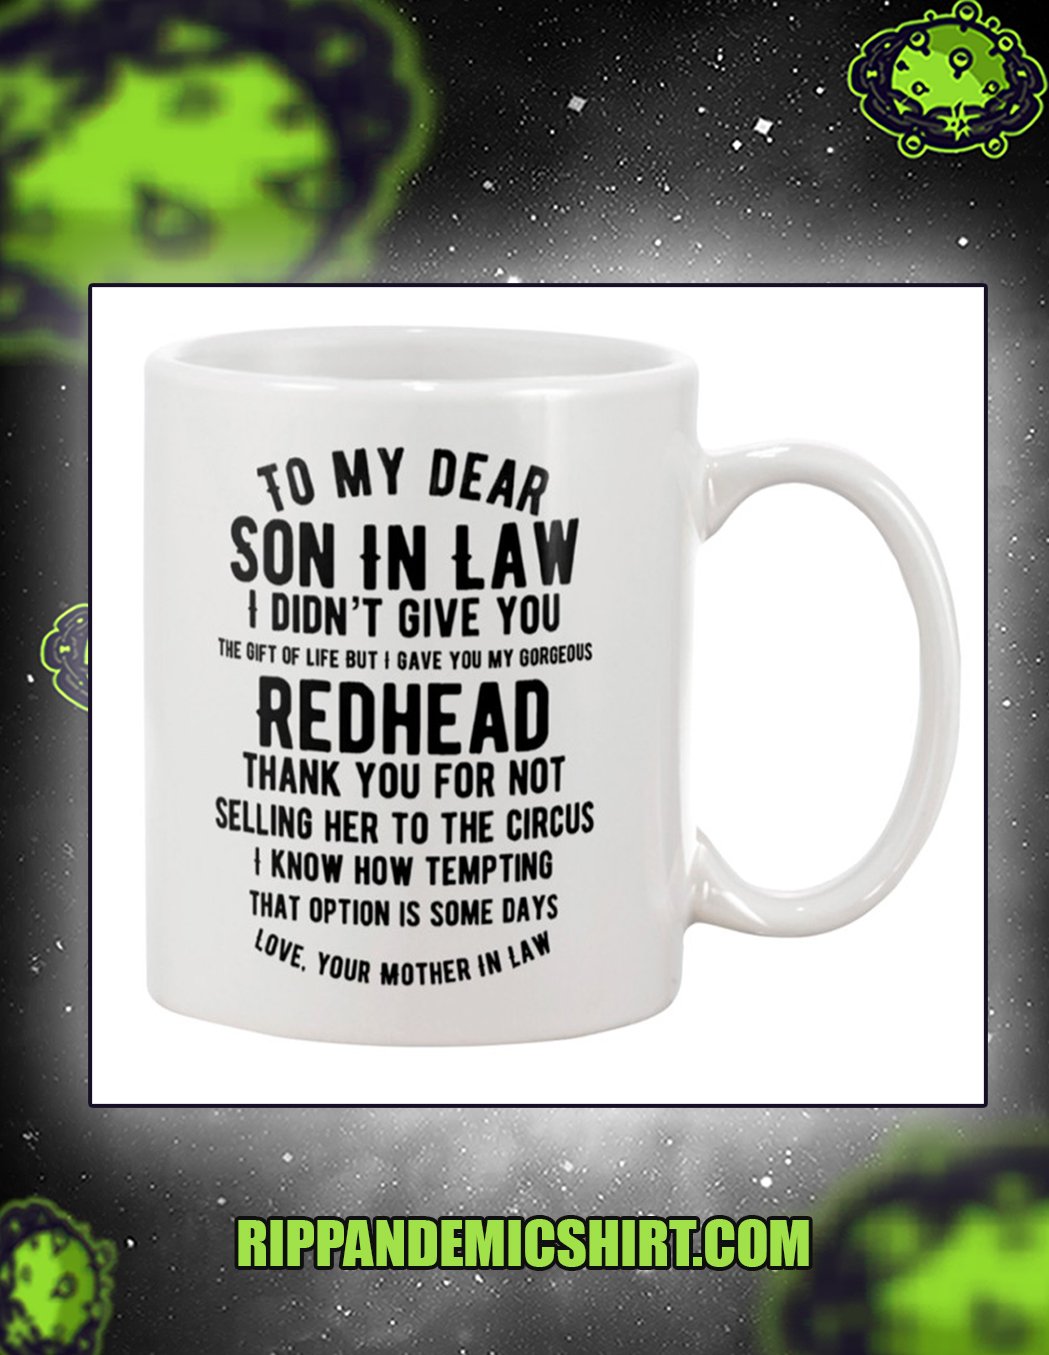 To my dear son in law I didn't give you mug 15oz